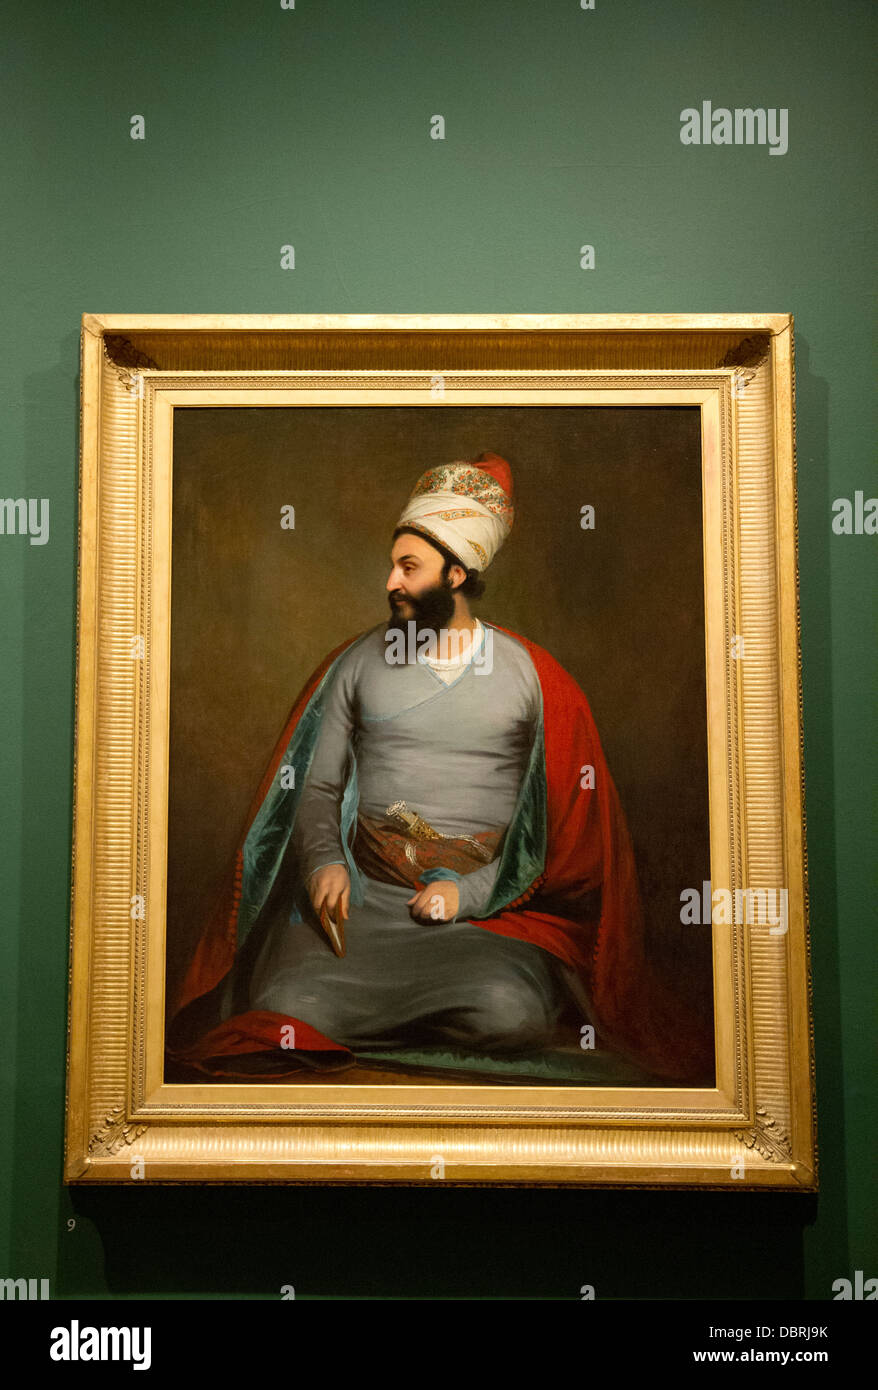 A painting by Sir William Beechey of Mirza Abu'l Hassan Khan Persian Ambassador to Britain - Stock Image